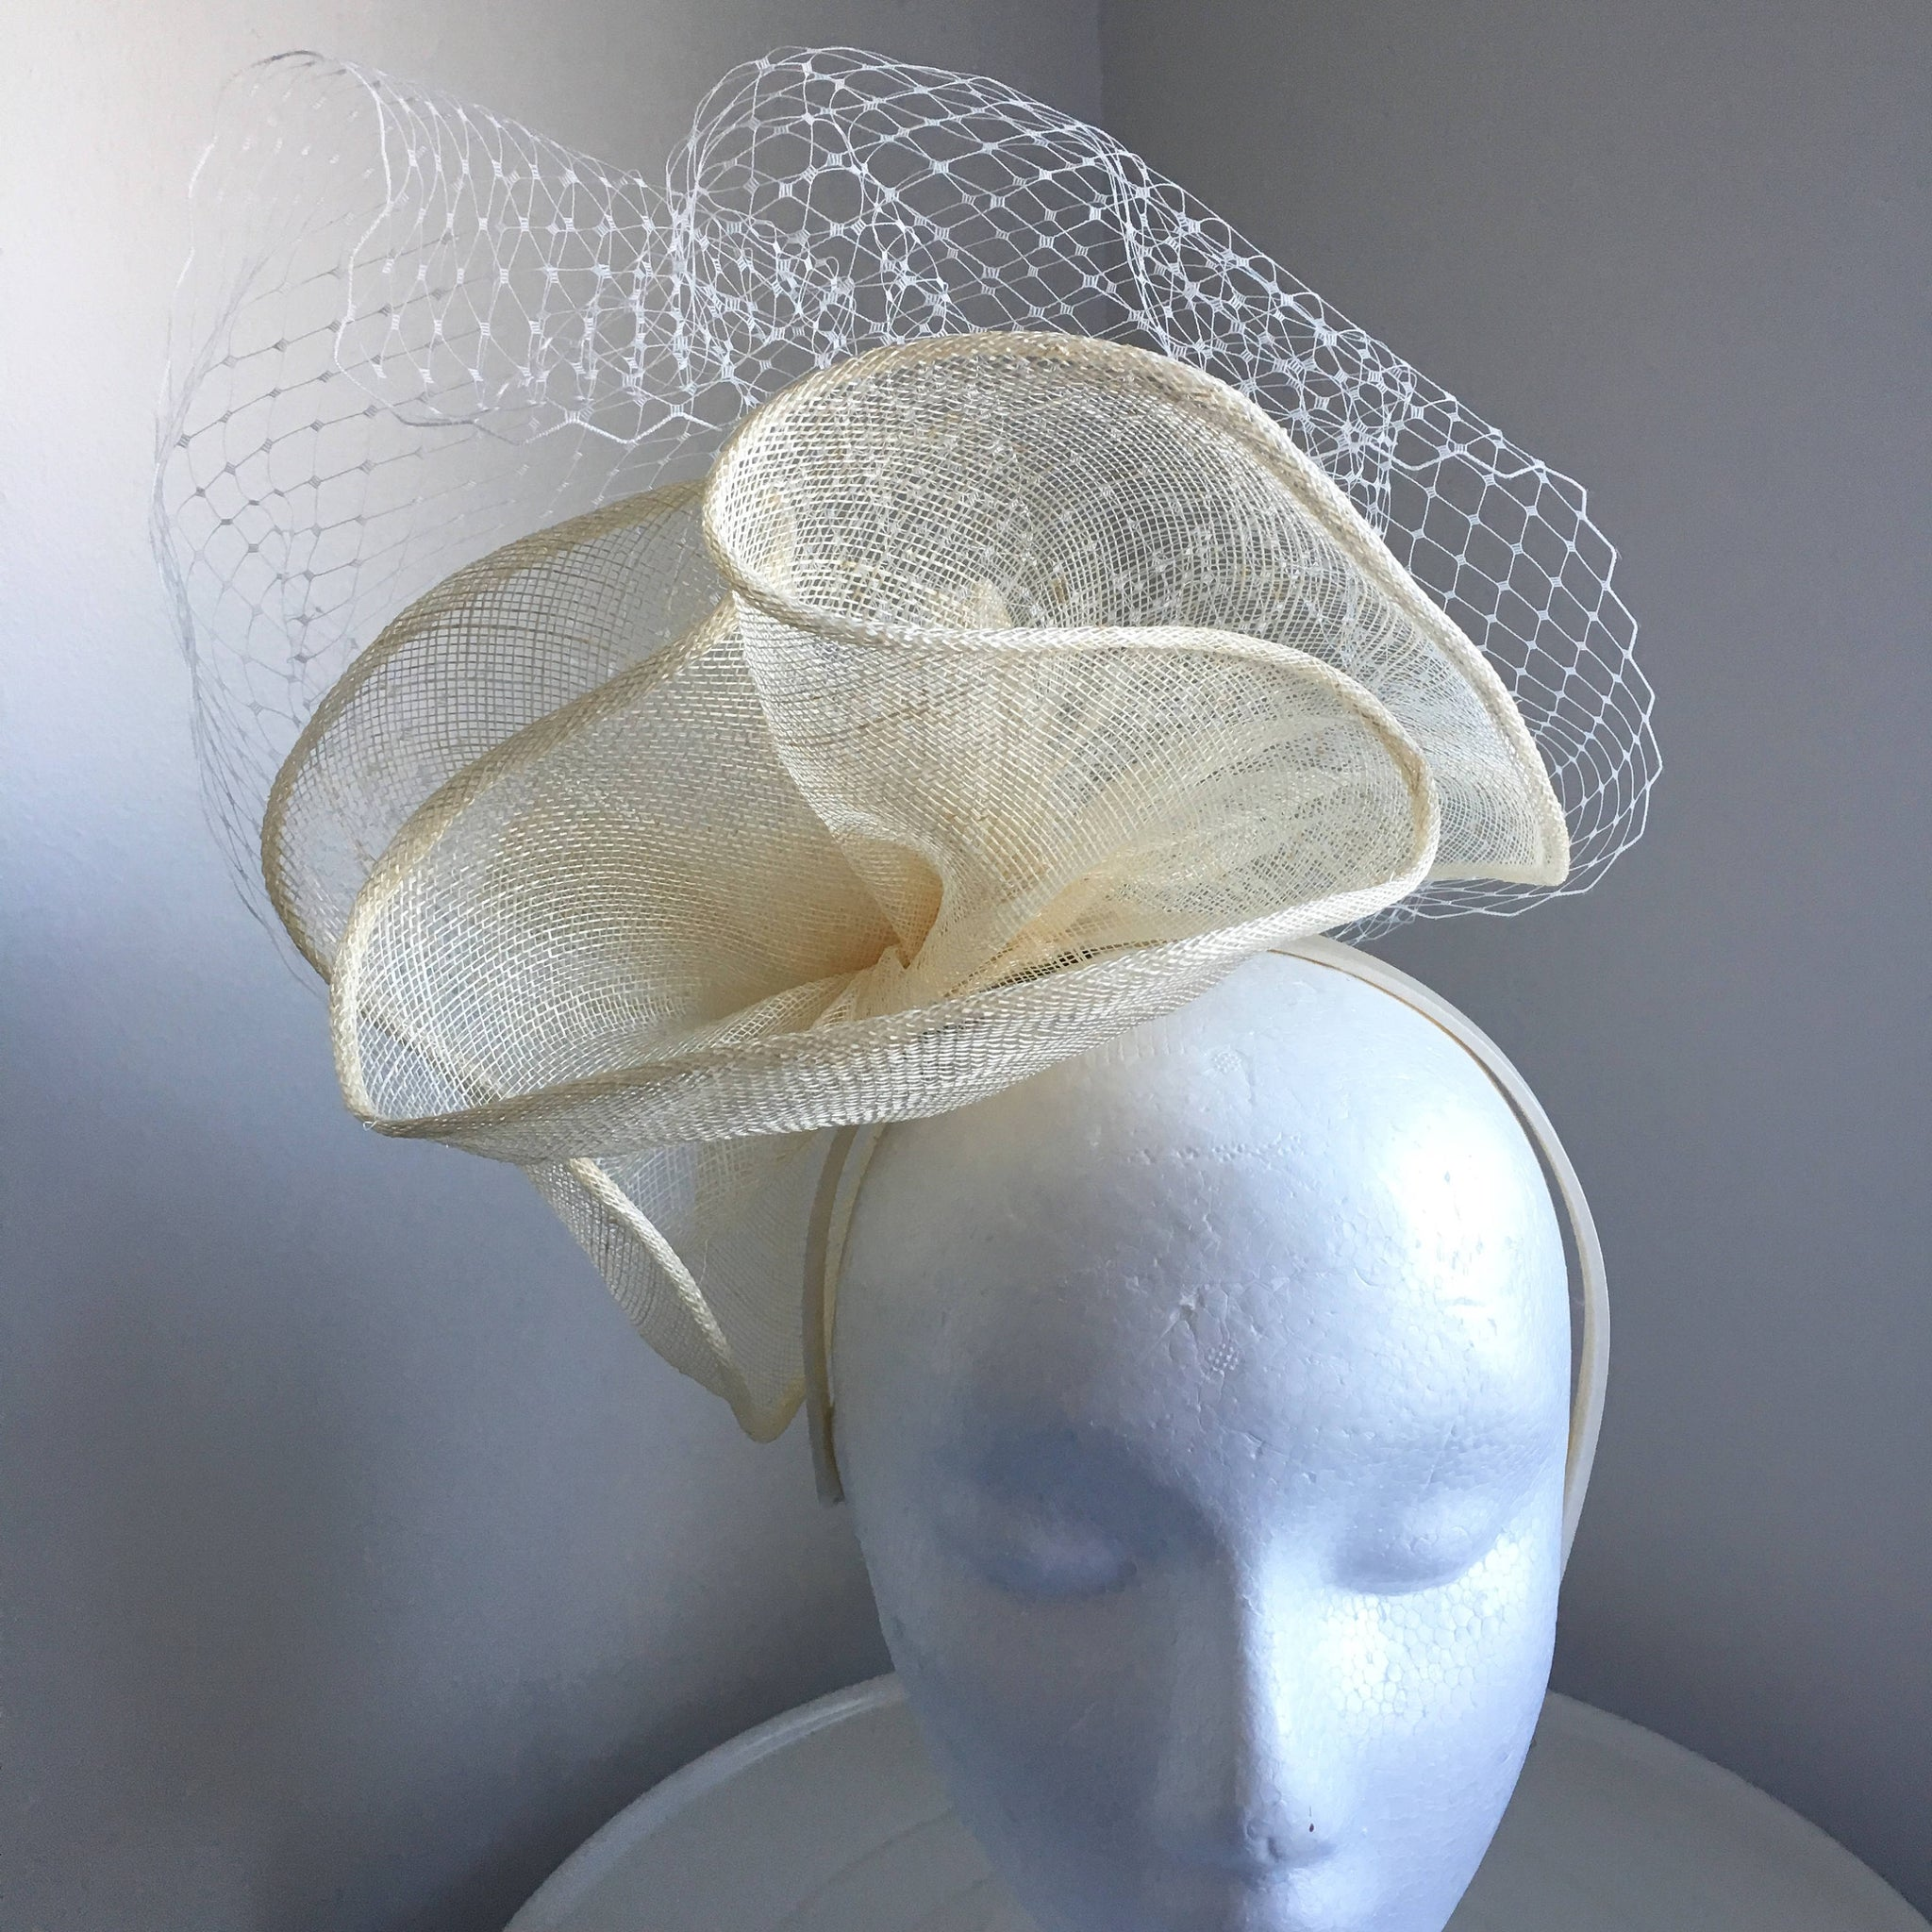 Sale item** Aubrey Cream Fascinator with Netting, Oaks Fascinator, Kentucky Derby Hat with Headband, Spring Racing Hat, Cream Hat, Wedding Hat,Women's Hat